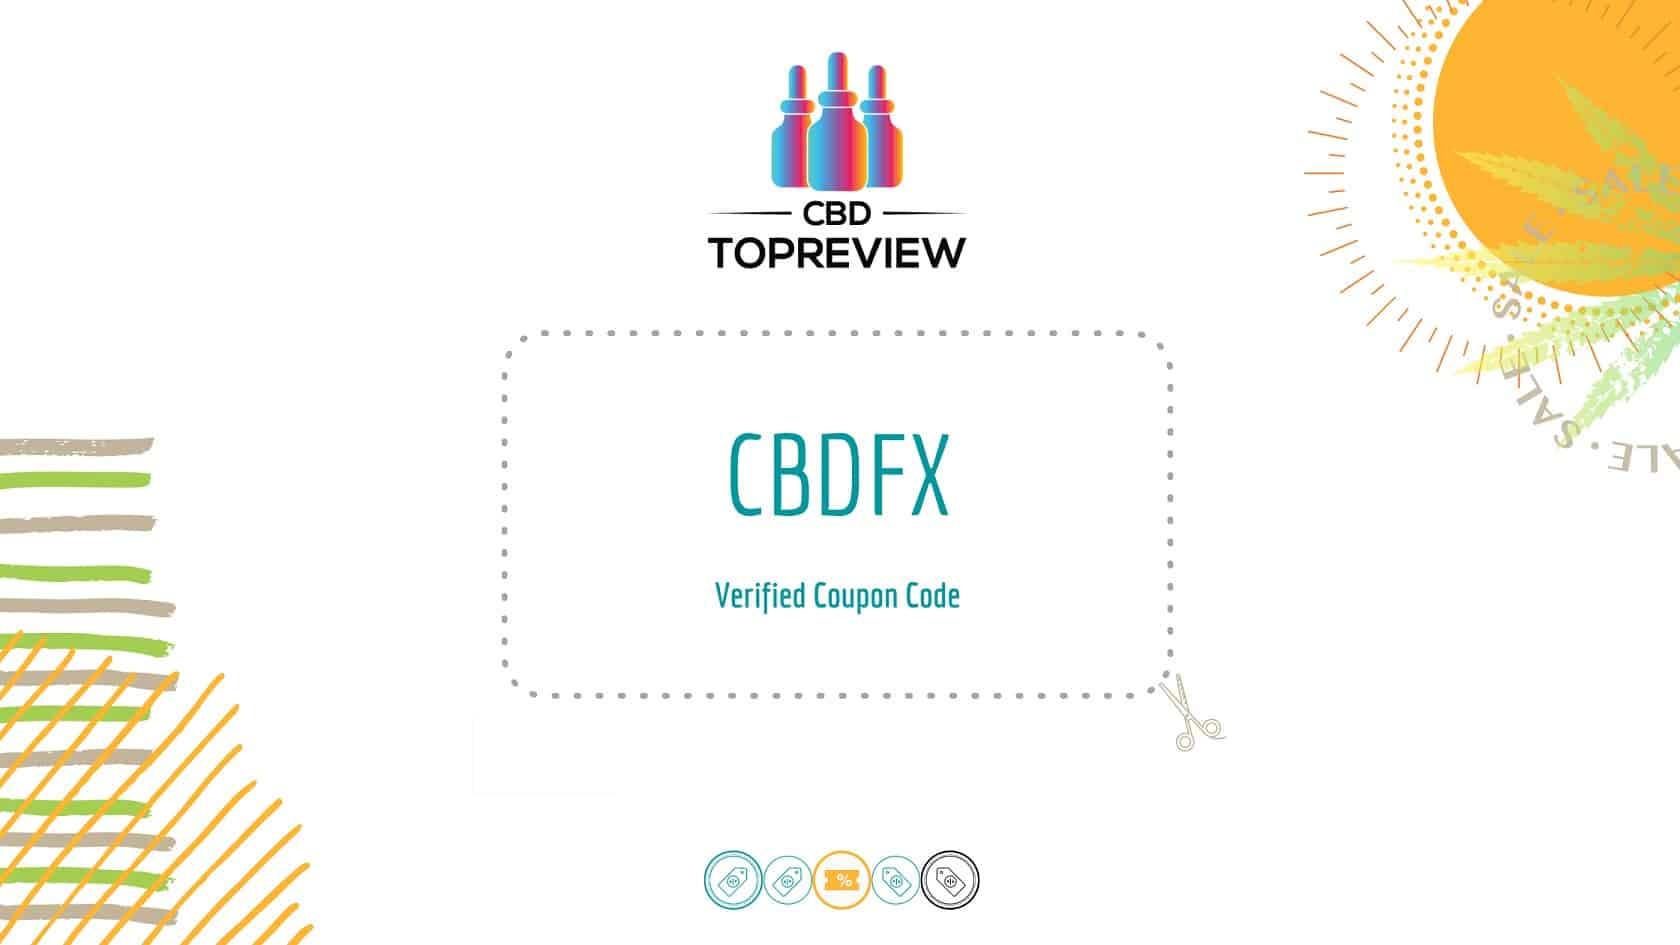 CBDfx coupon: get 10% off CBDfx today